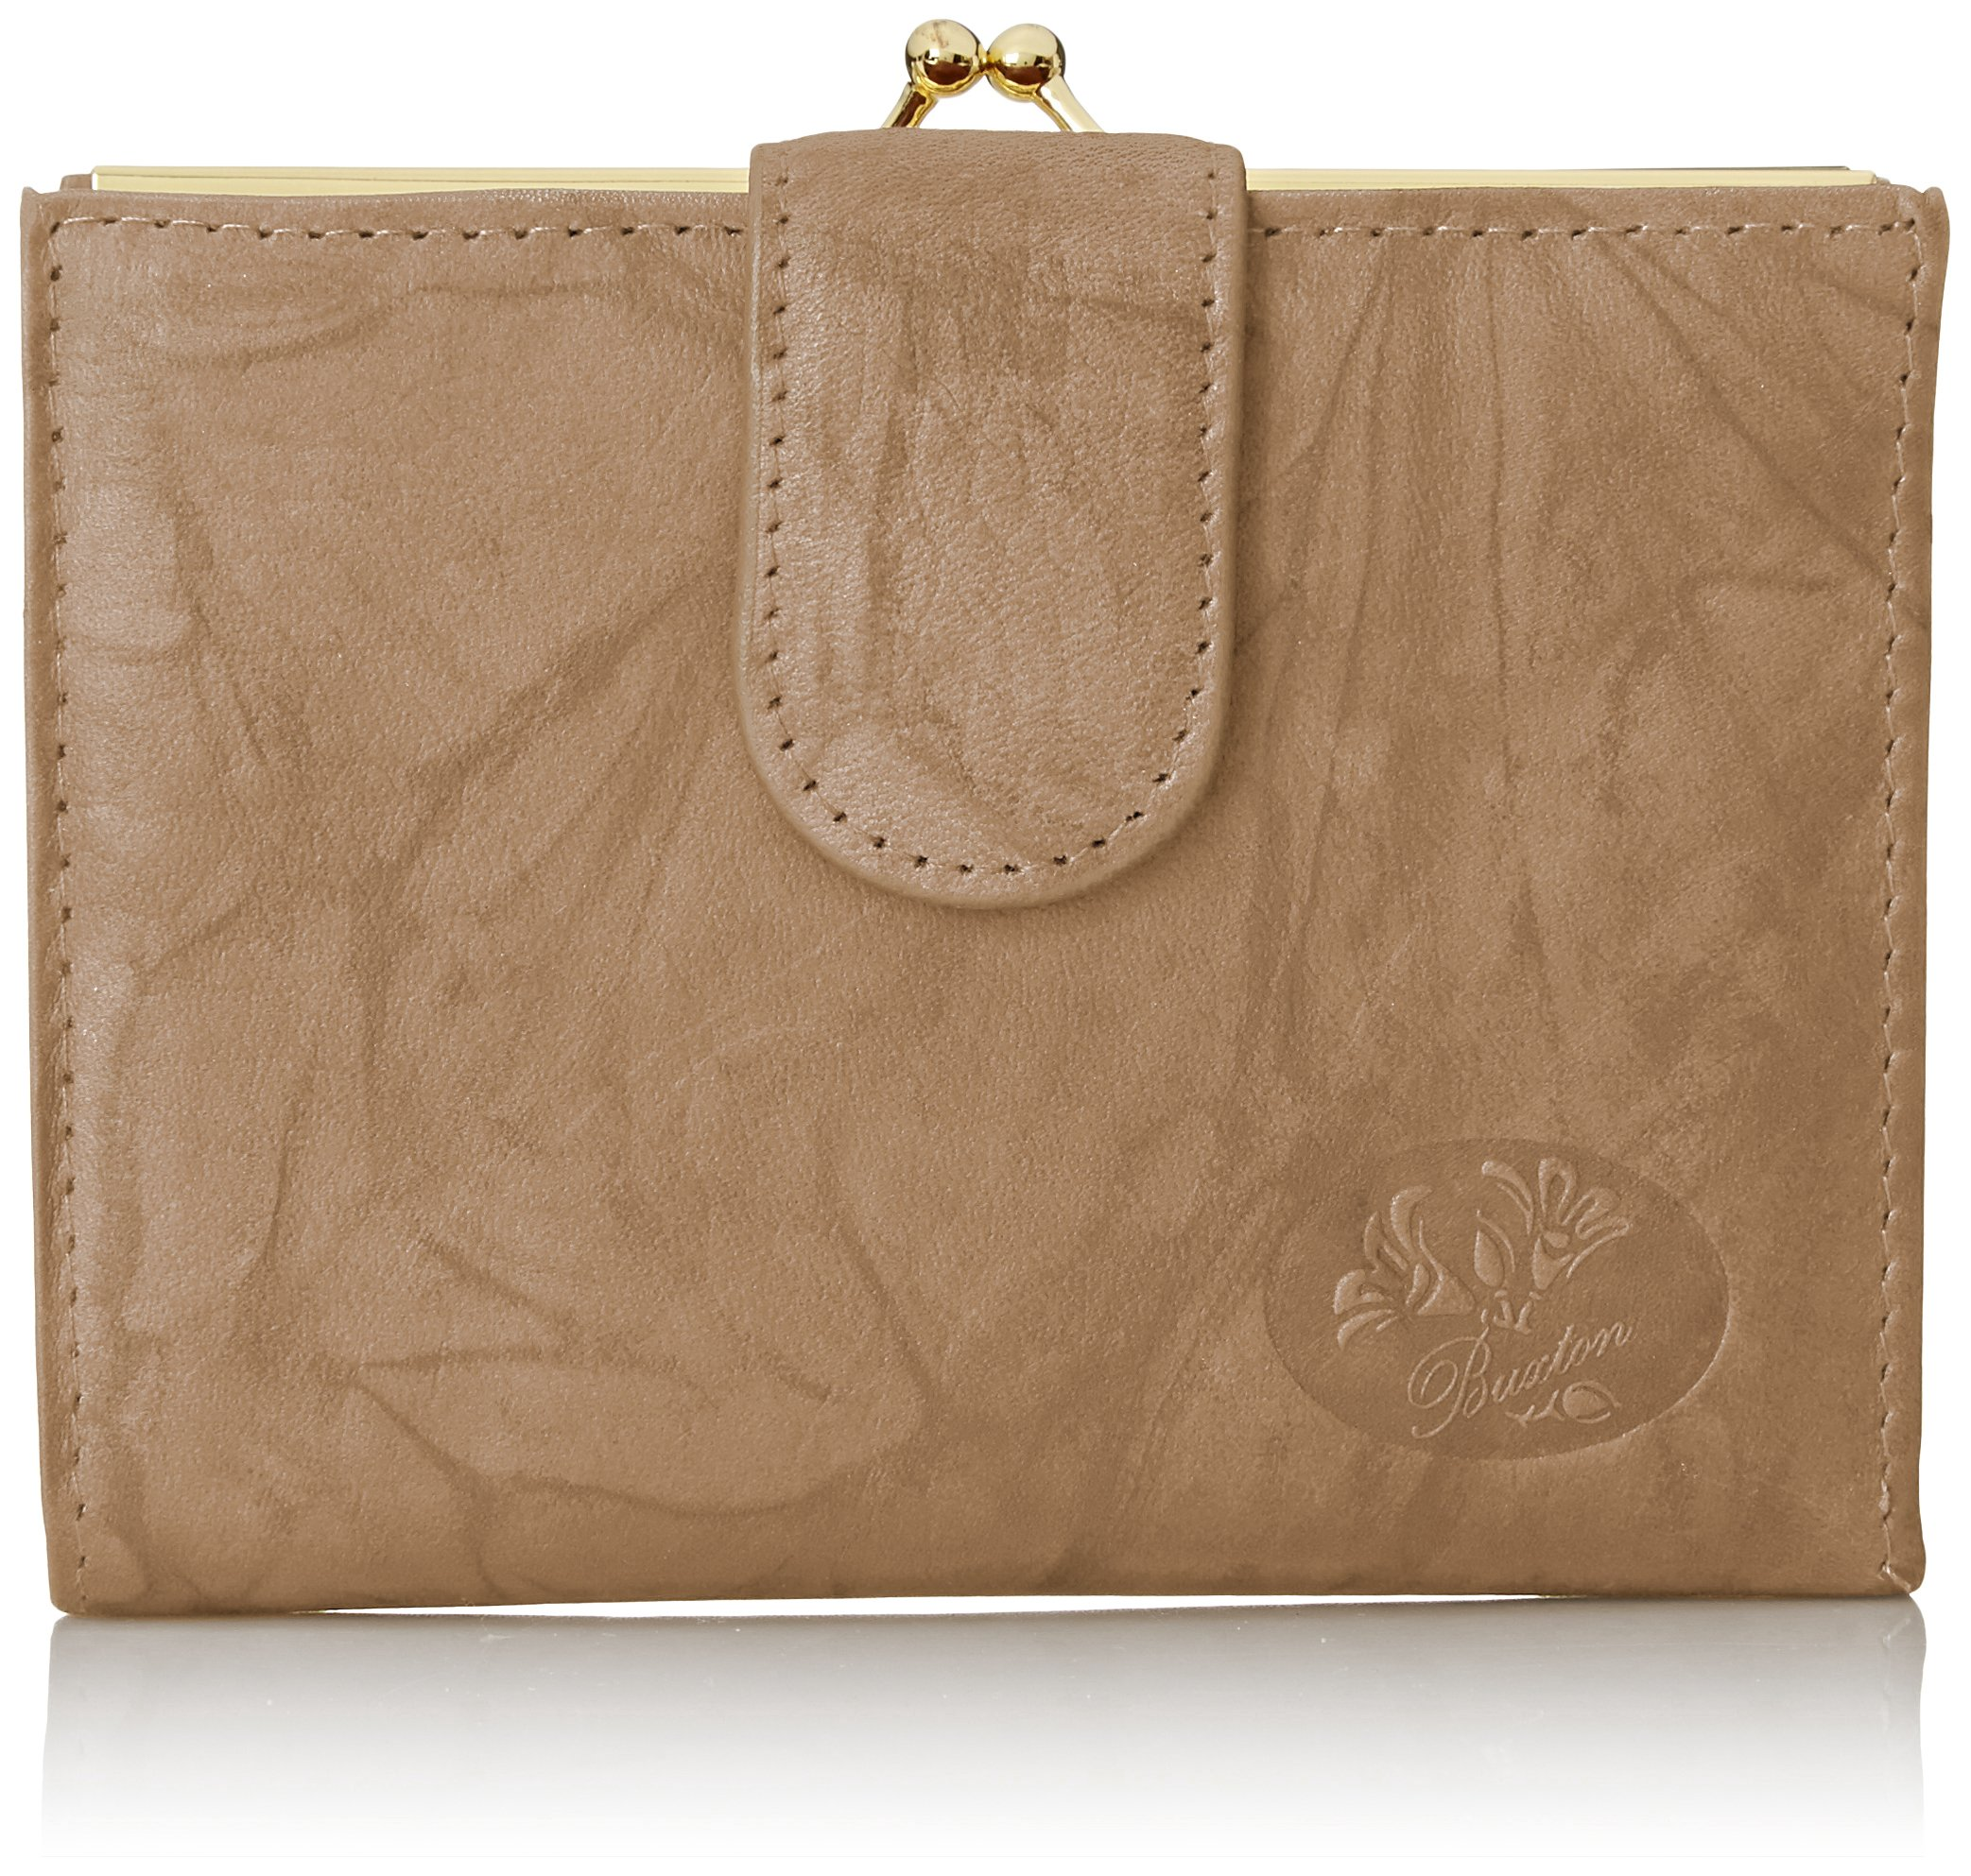 Buxton Heiress Double Cardex Wallet, Taupe, One Size